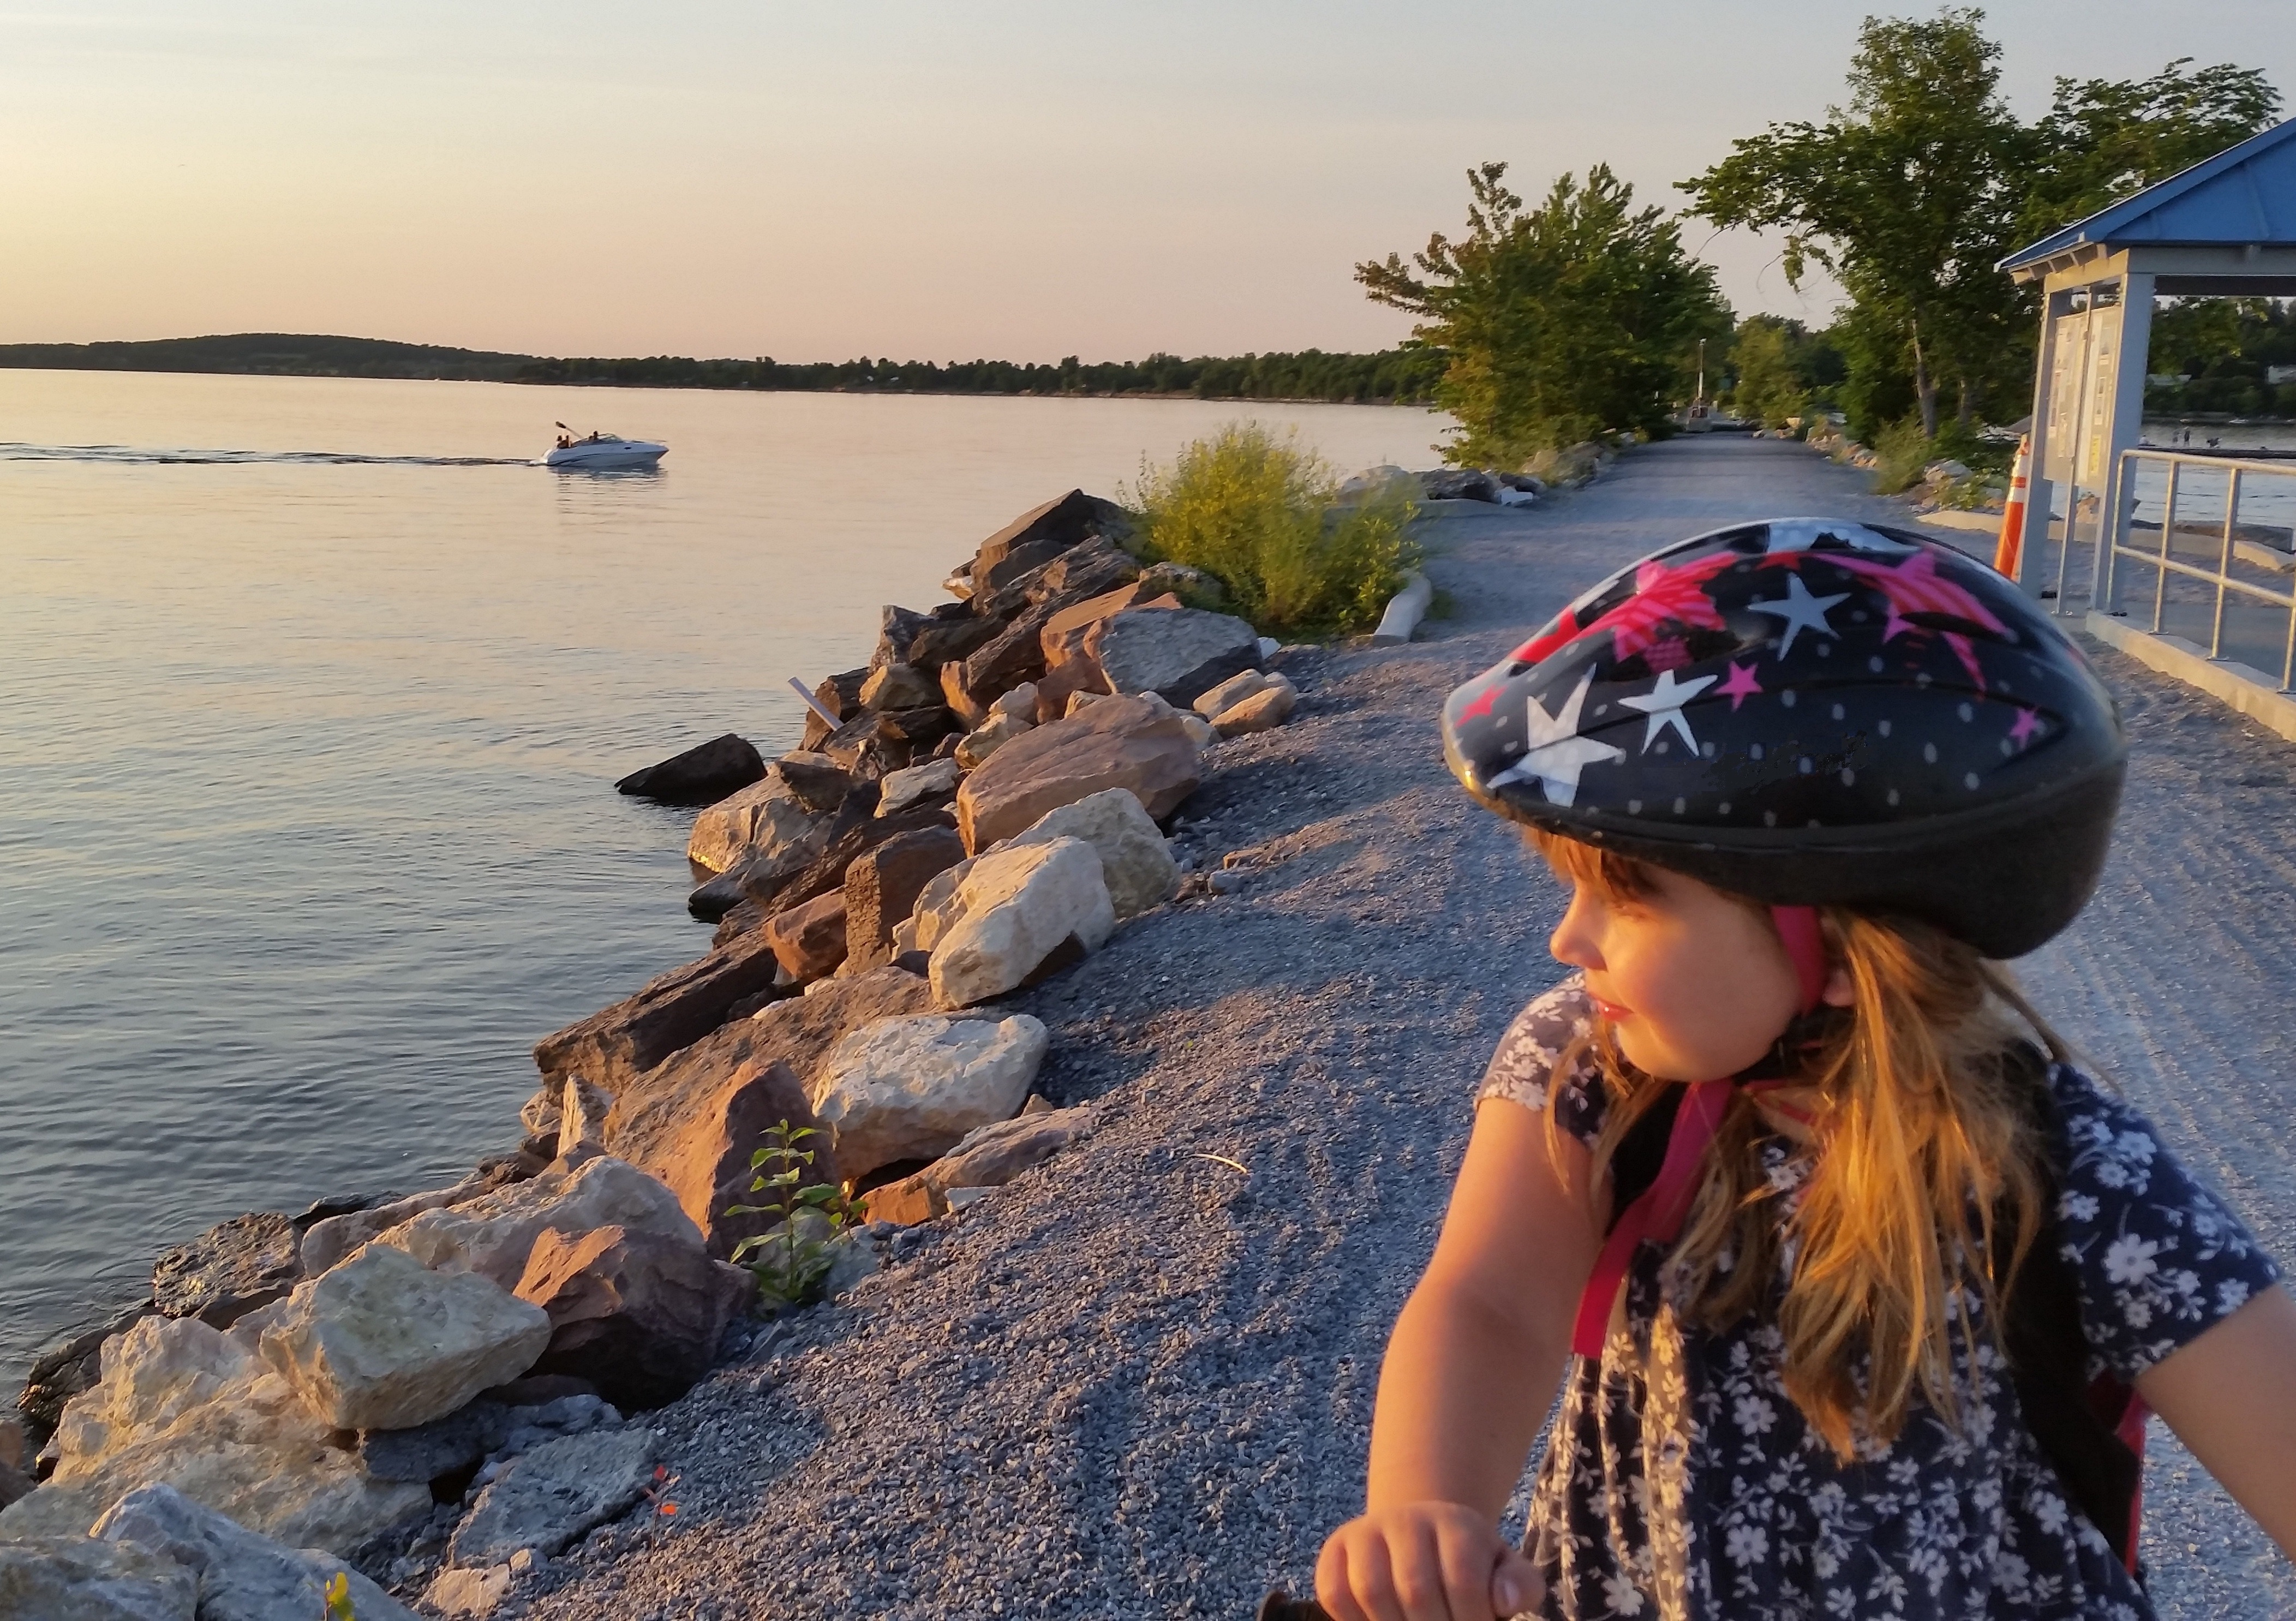 girl on bike near lake